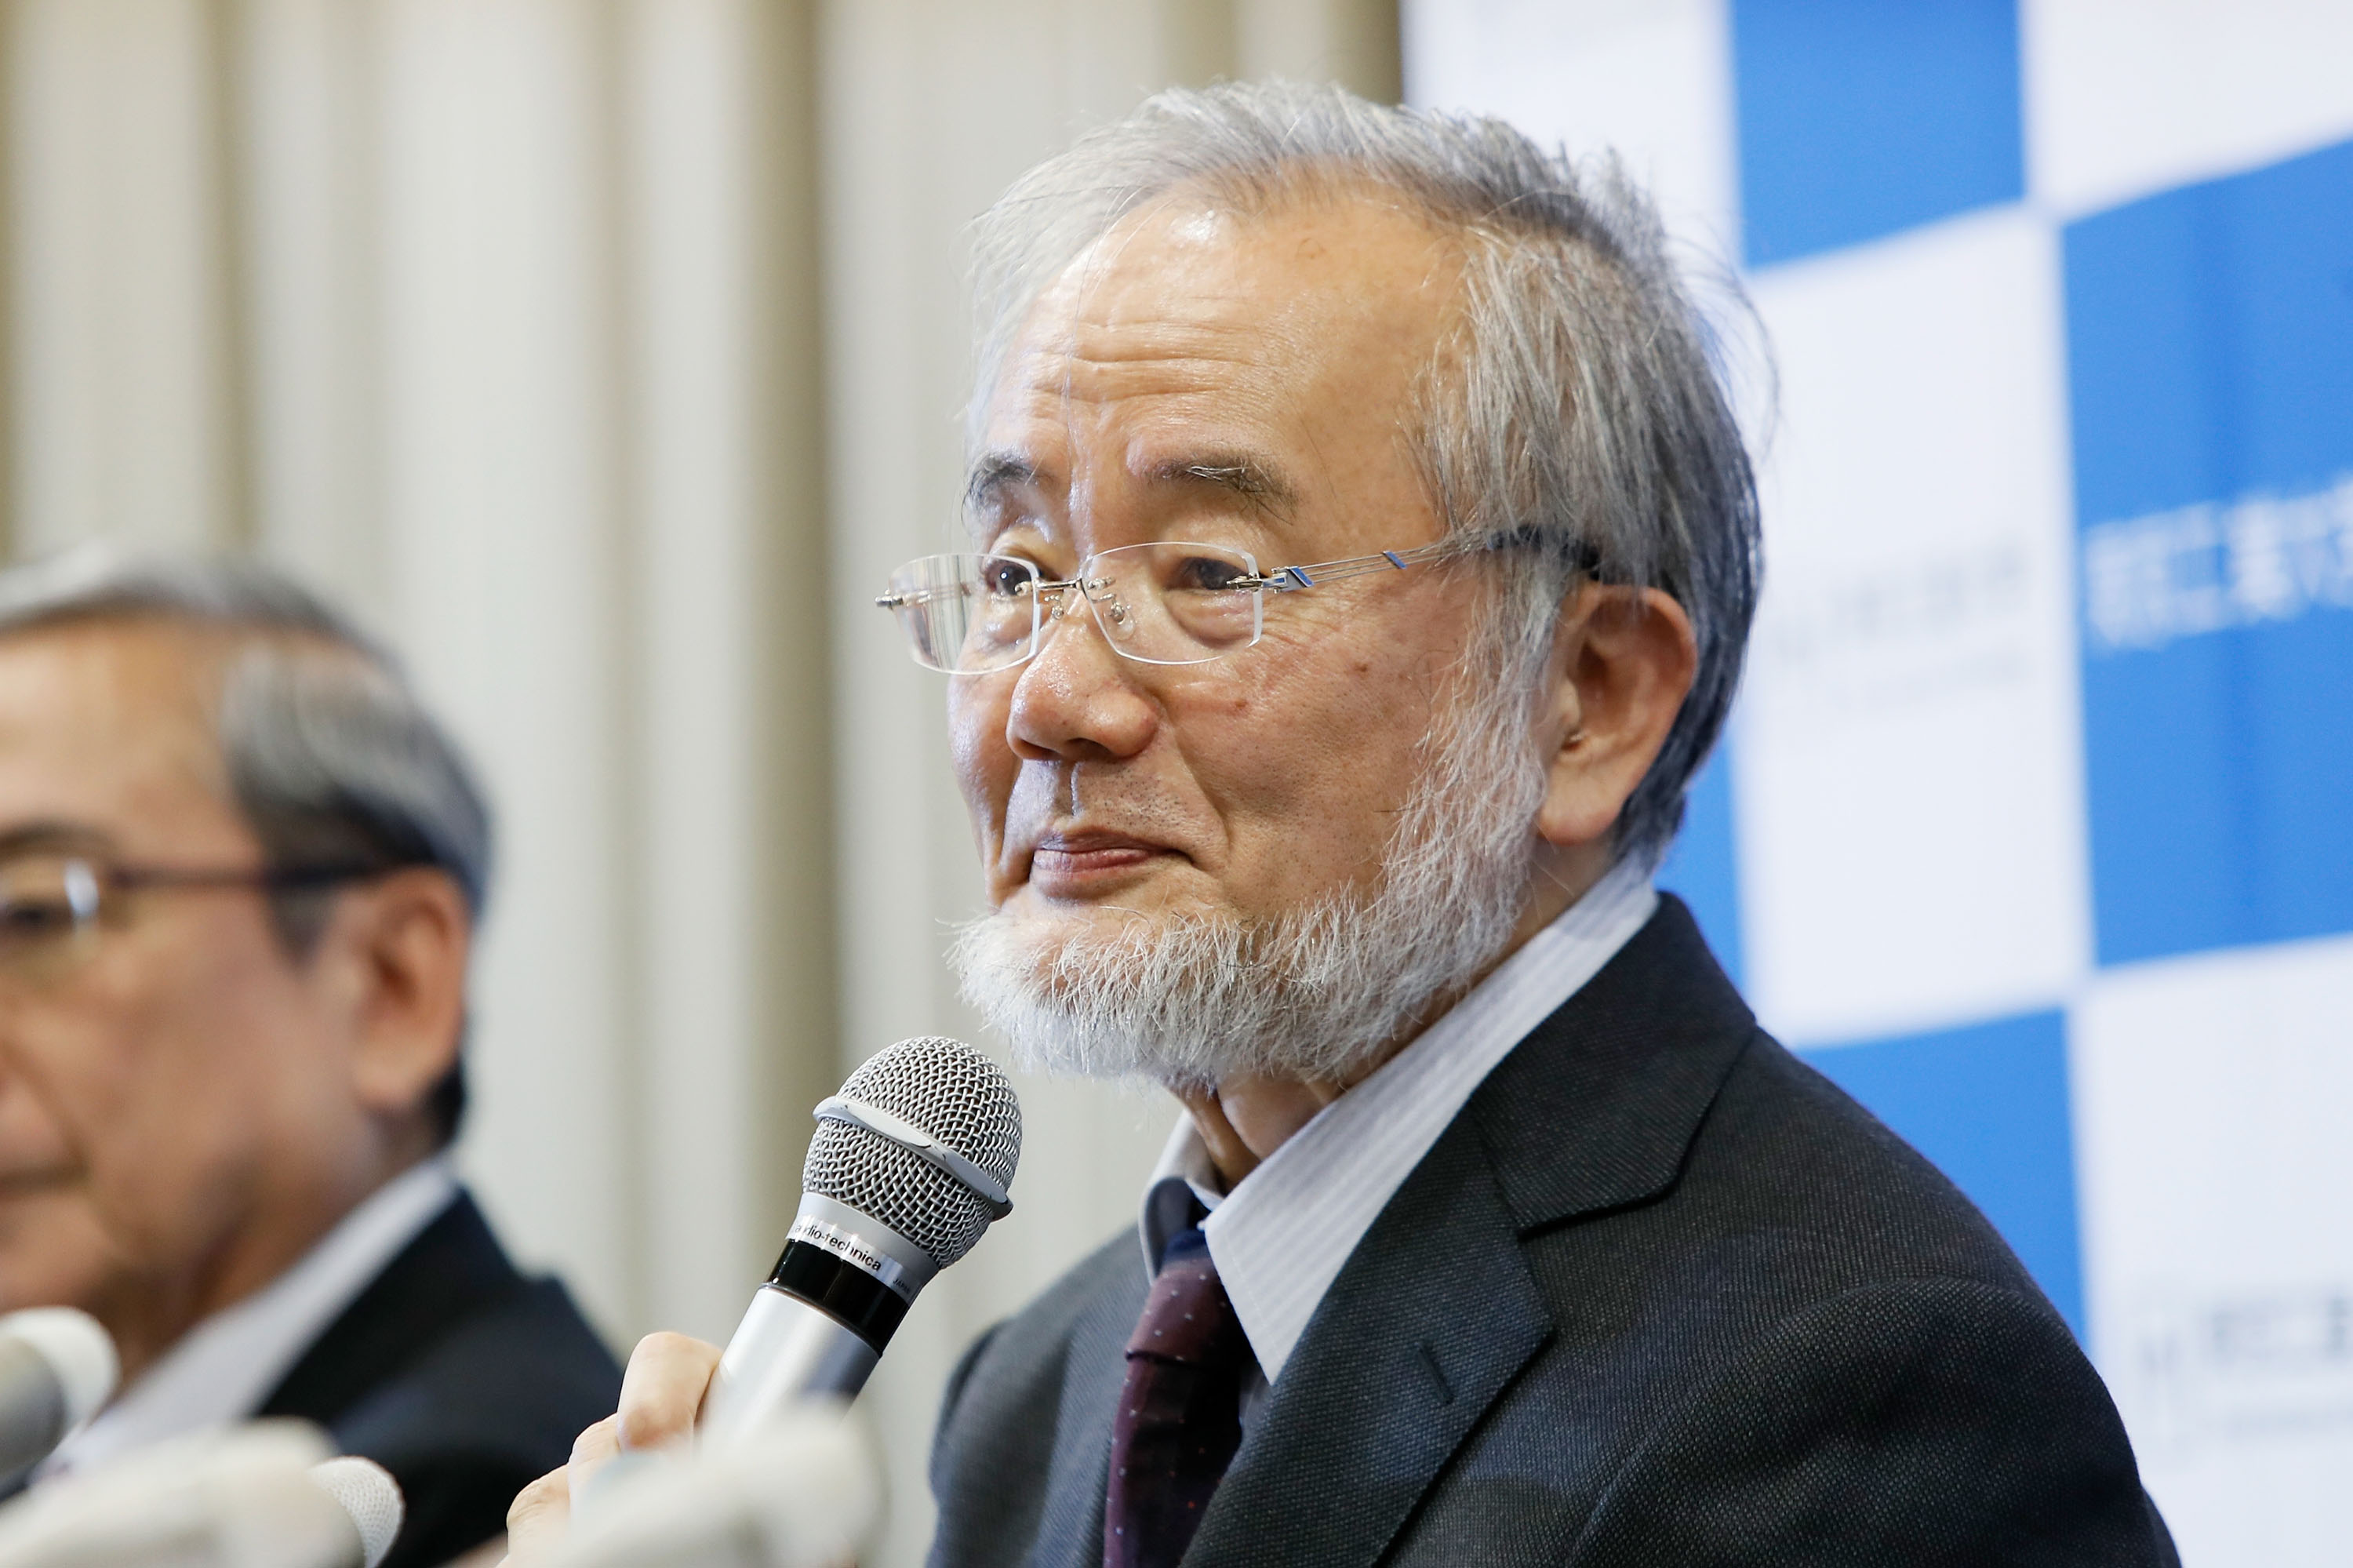 Yoshinori ohsumi far nobels medicinpris